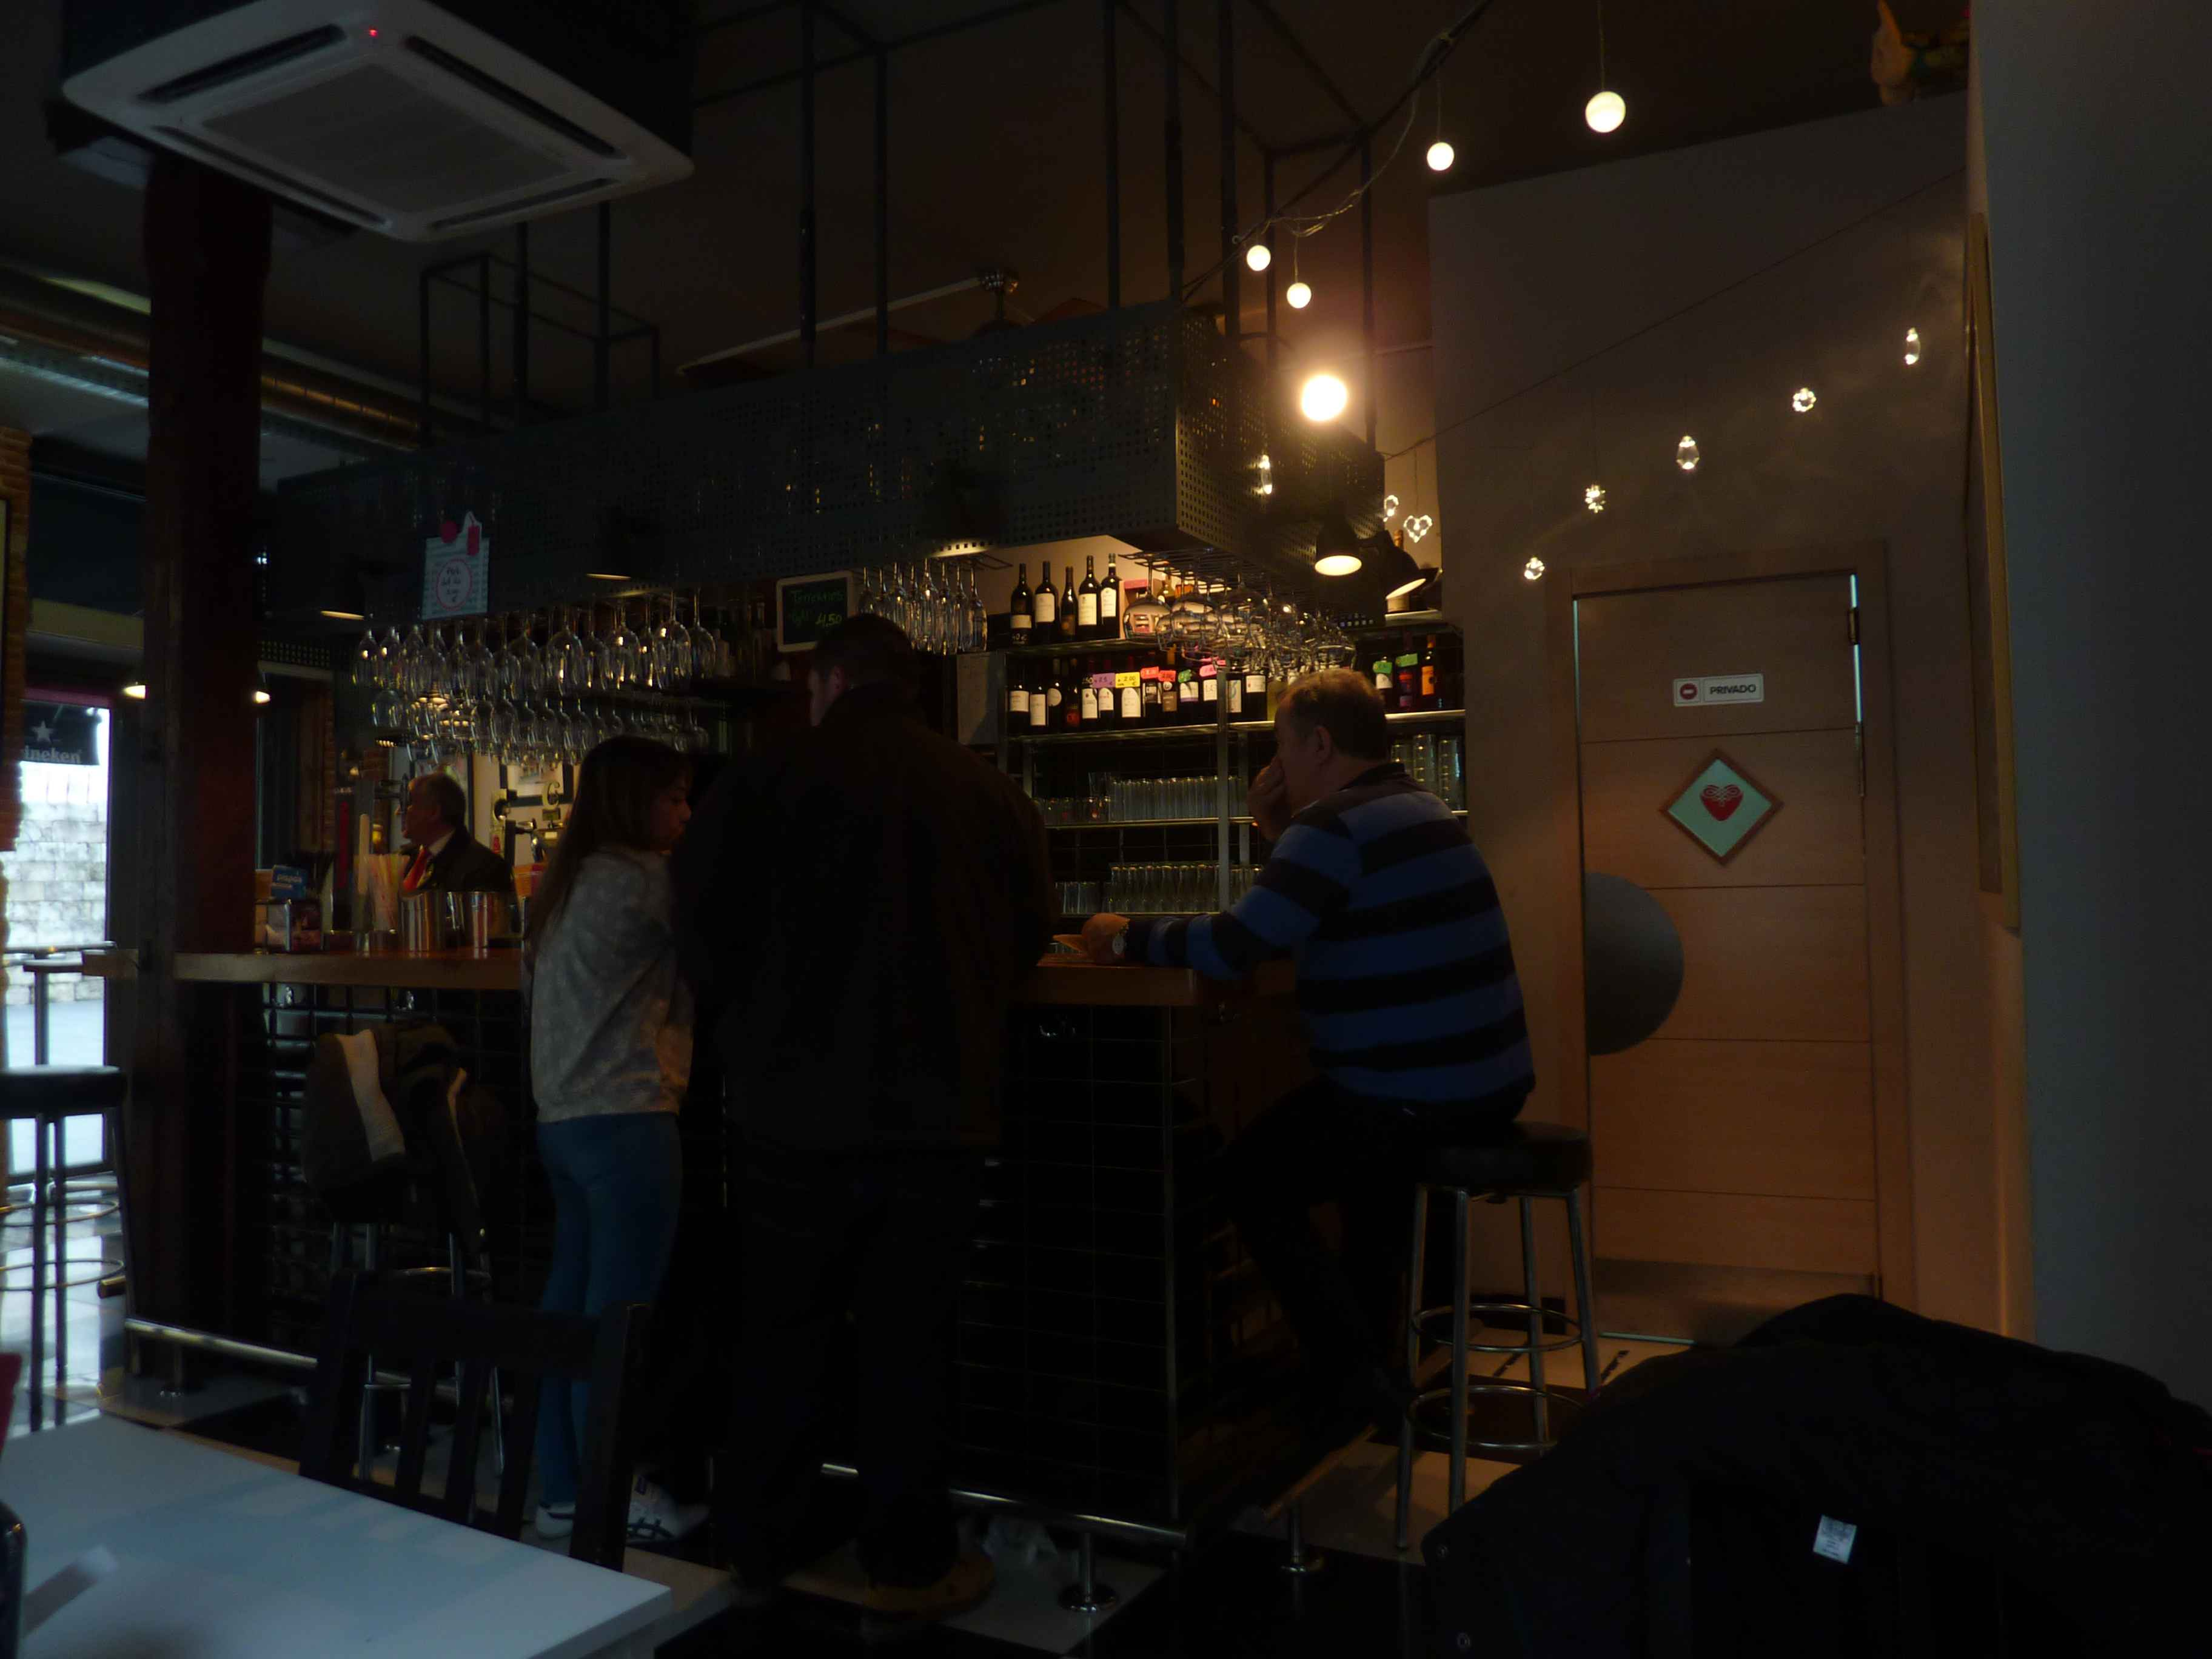 Super Bar Dans Valladolid en Images